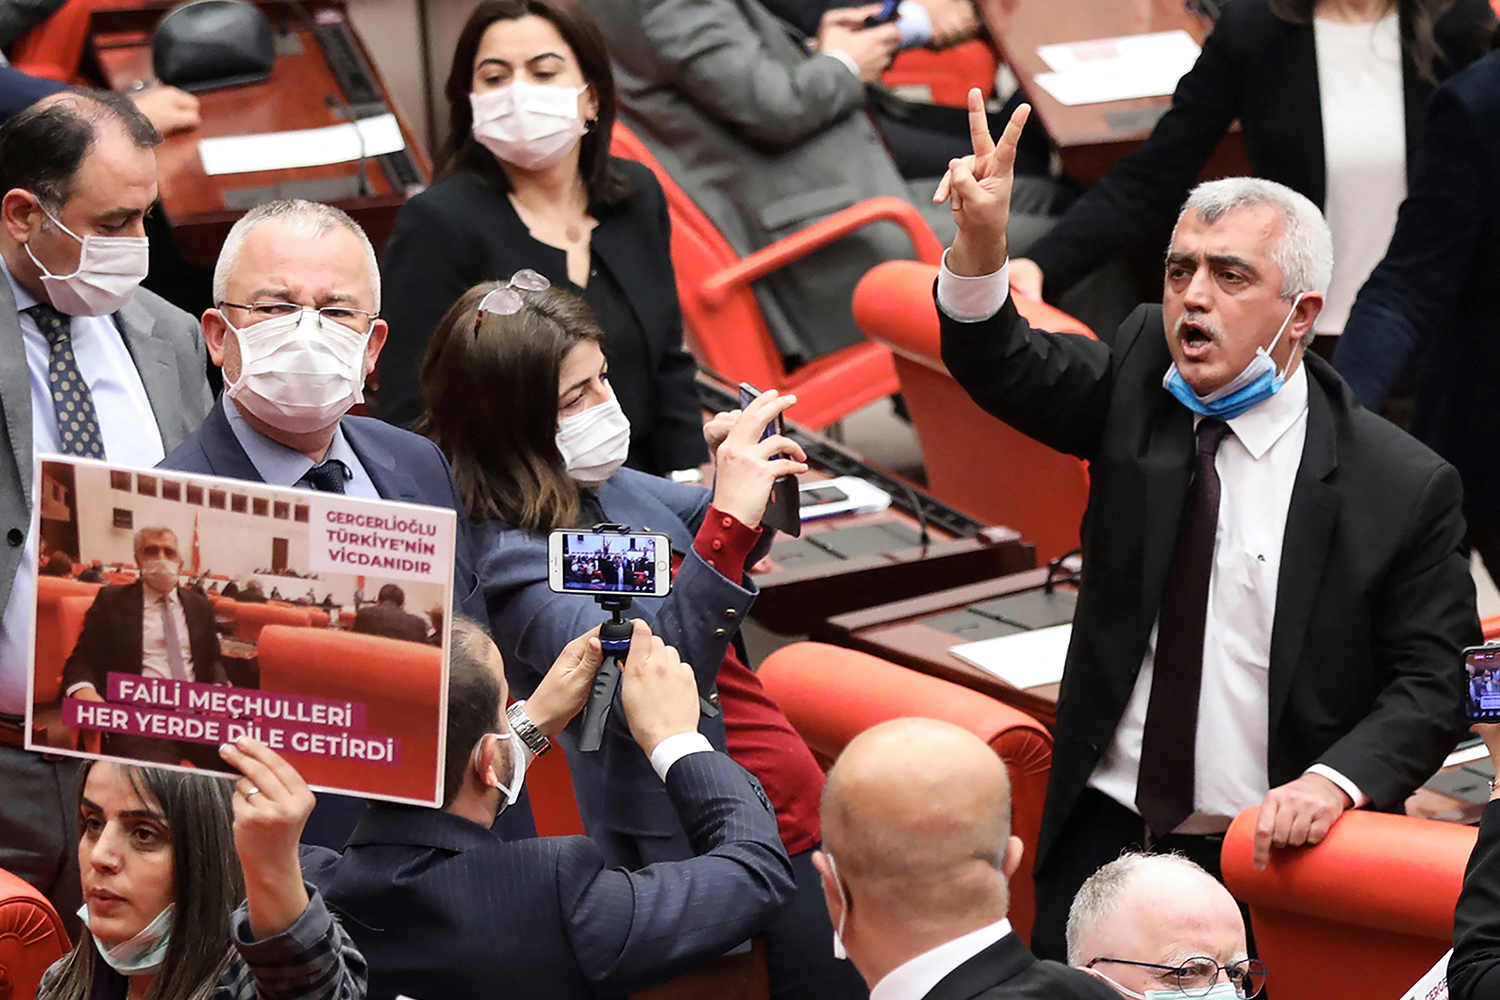 Omer Faruk Gergerlioglu, a Turkish member of parliament for the left-wing Peoples' Democratic Party, is surrounded by MPs applauding and brandishing placards after he was dismissed following a vote at the Turkish parliament in Ankara on March 17.